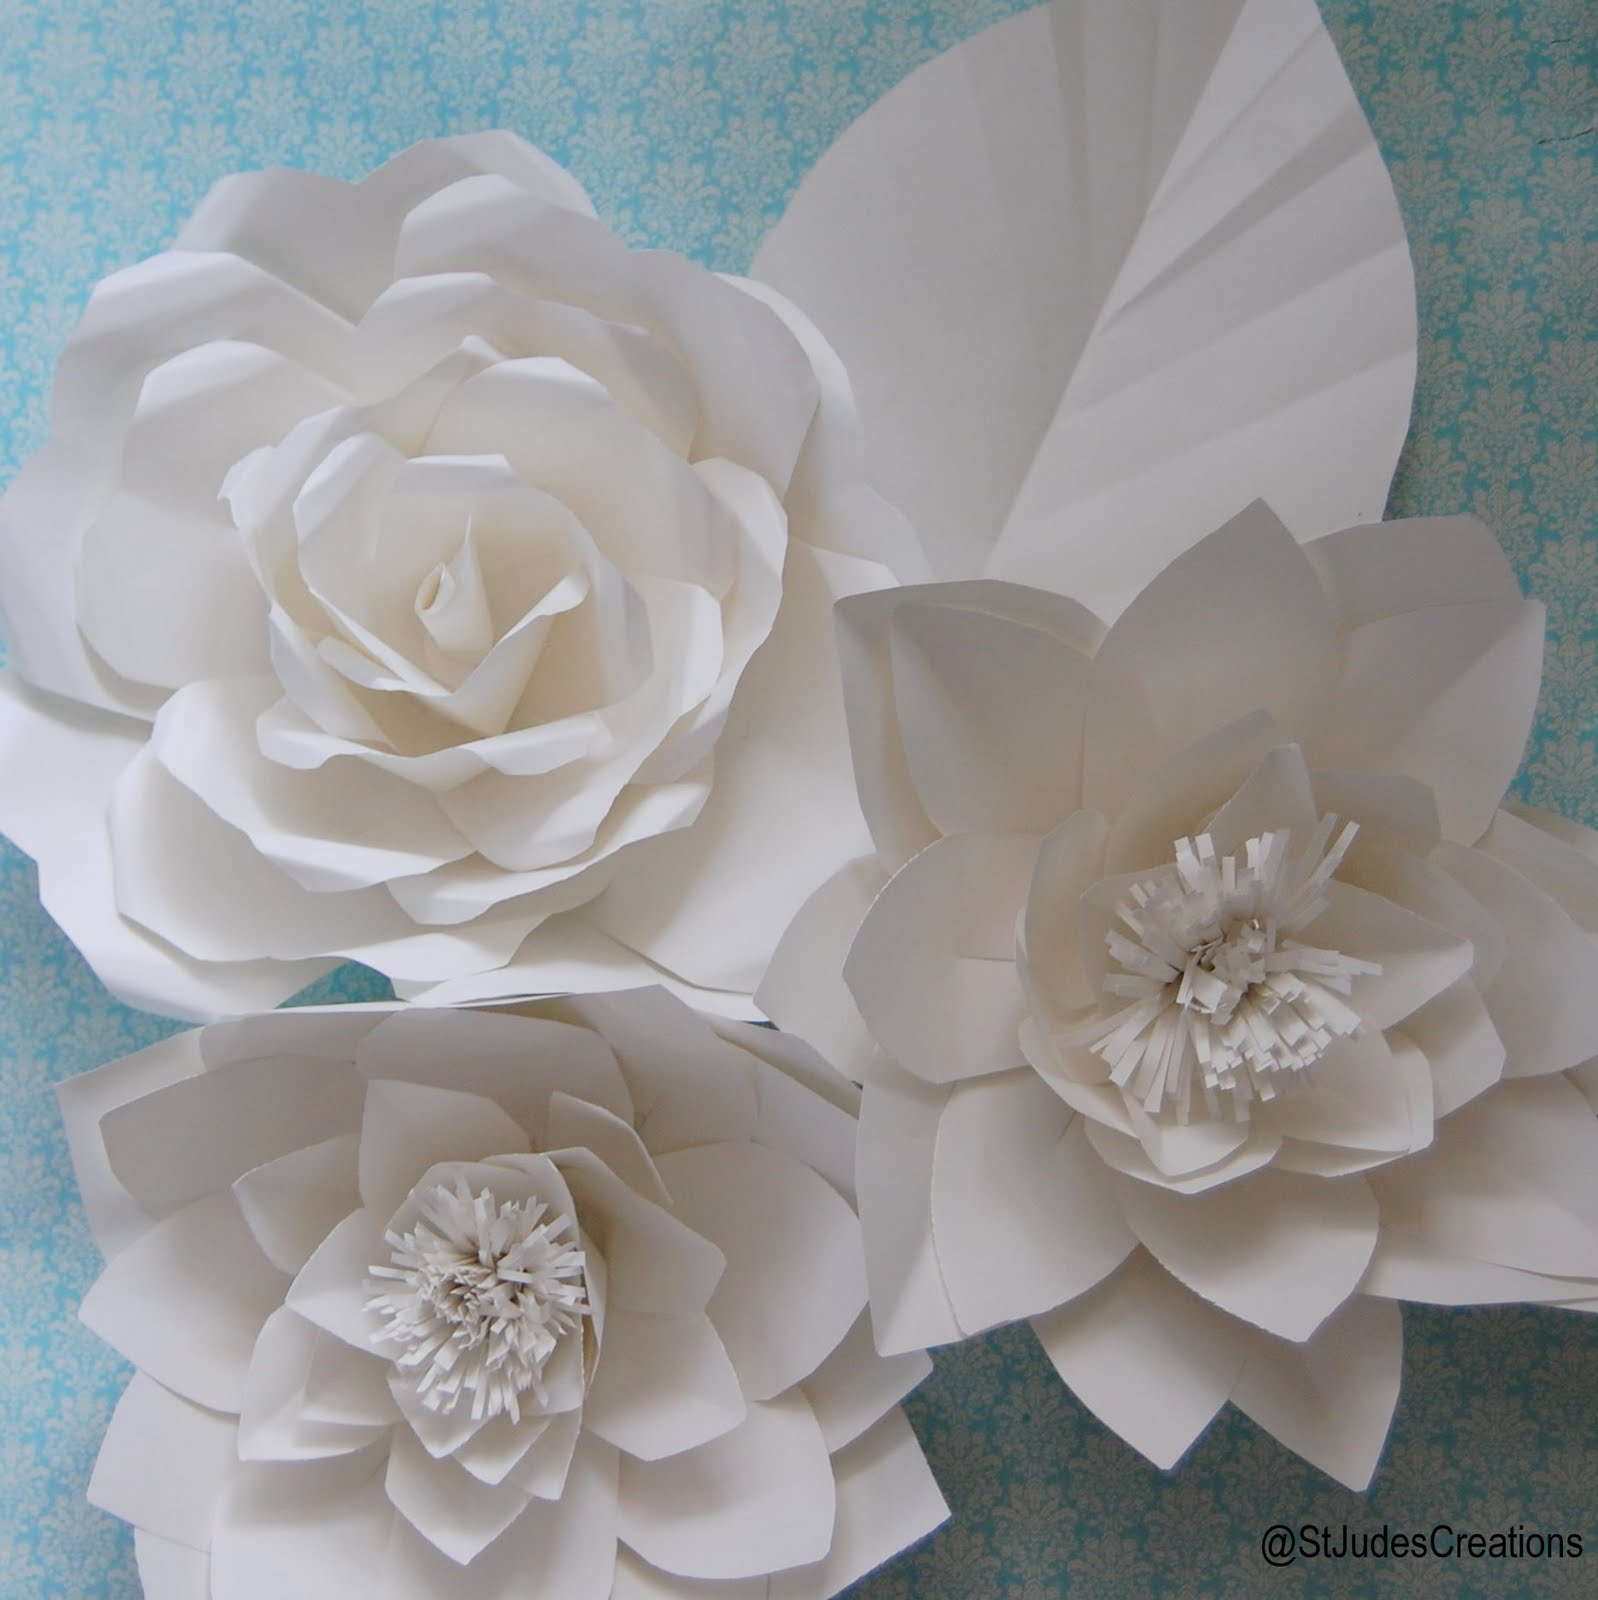 Here is your free sample essay on Flowers